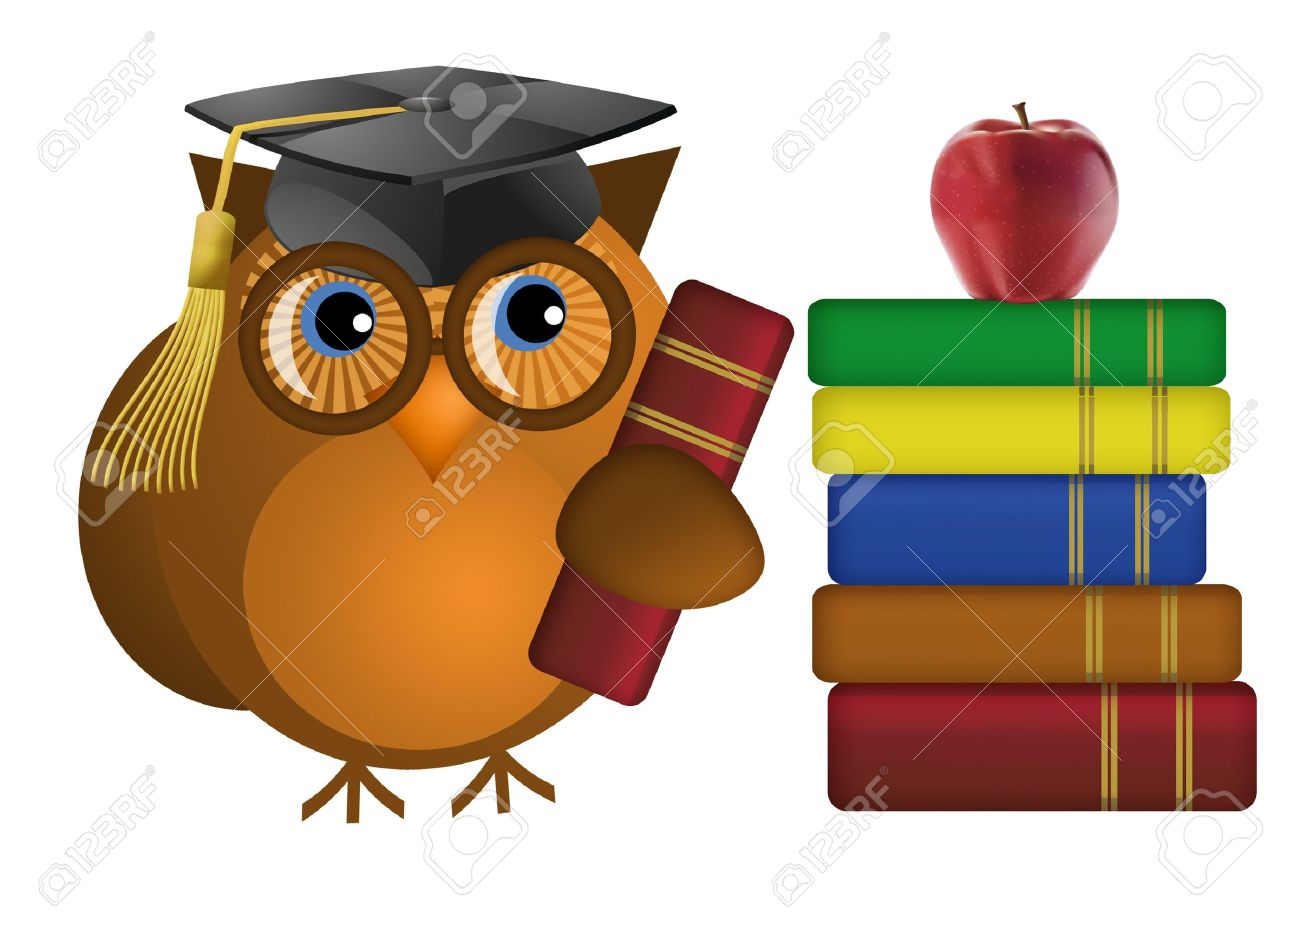 Wise Old Owl with Colorful Text Books Illustration Stock Photo - 8937949